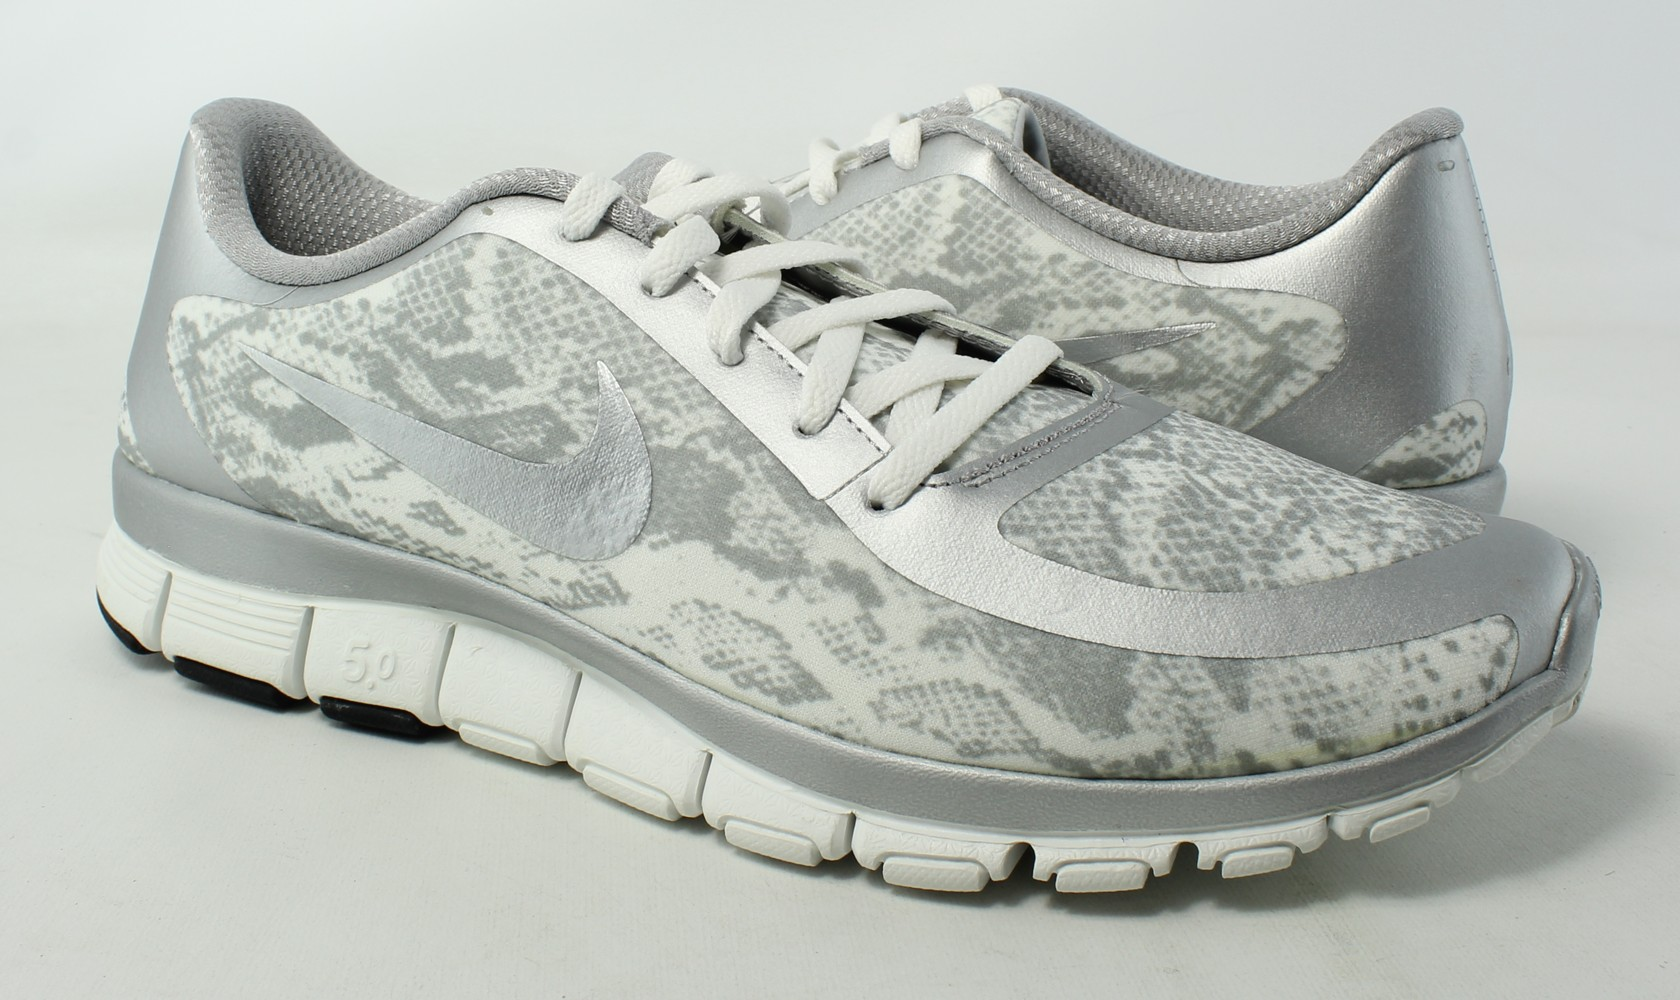 ef15577aac5ce Nike Womens Free 5.0 V4 Ns Pt Gray Running Shoes Size 12 ...